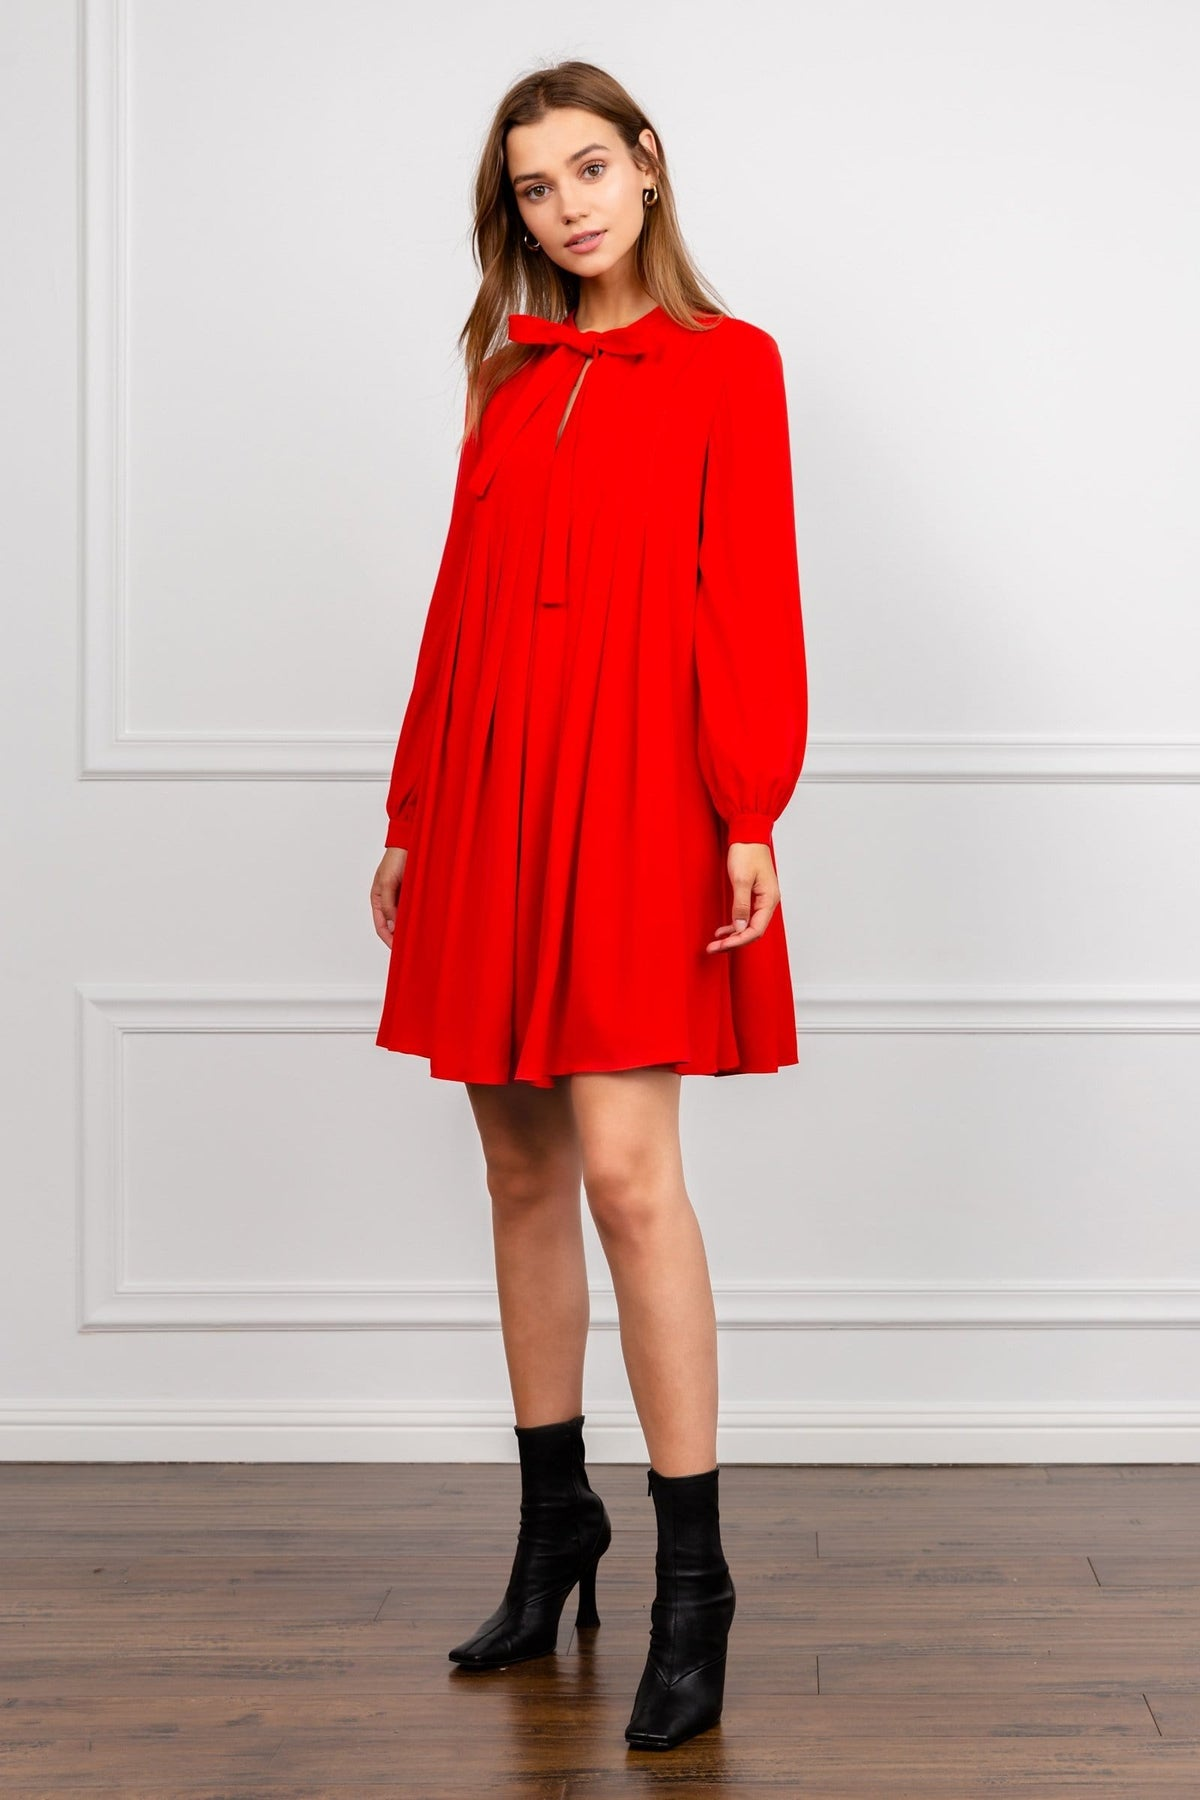 Red Long Sleeve Knit Collar Tent Dress | J.ING women's apparel